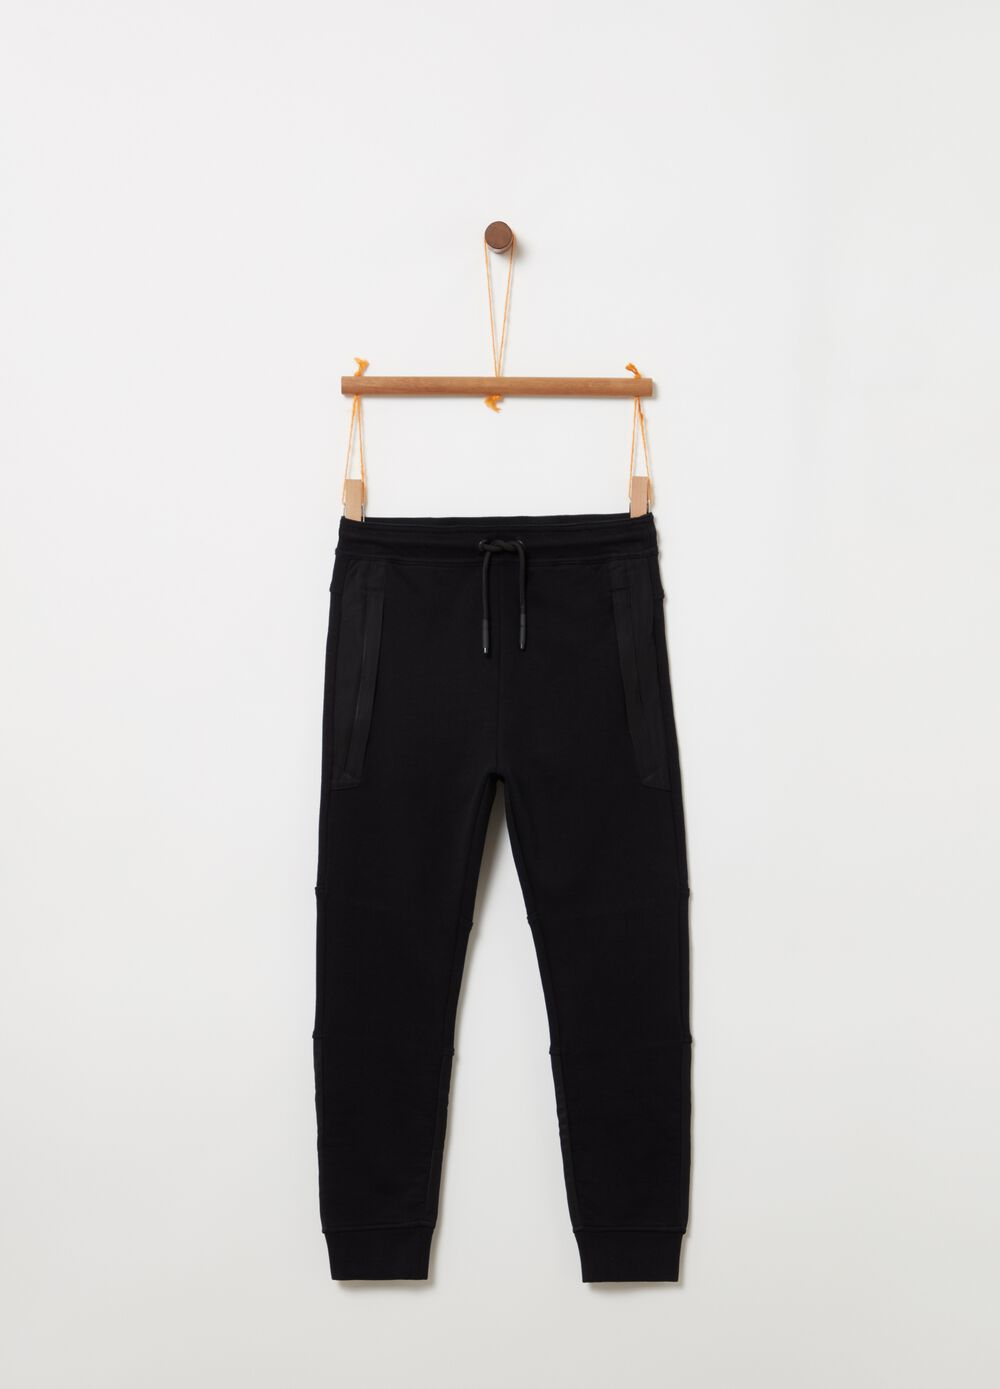 Trousers in 100% cotton with drawstring and nylon